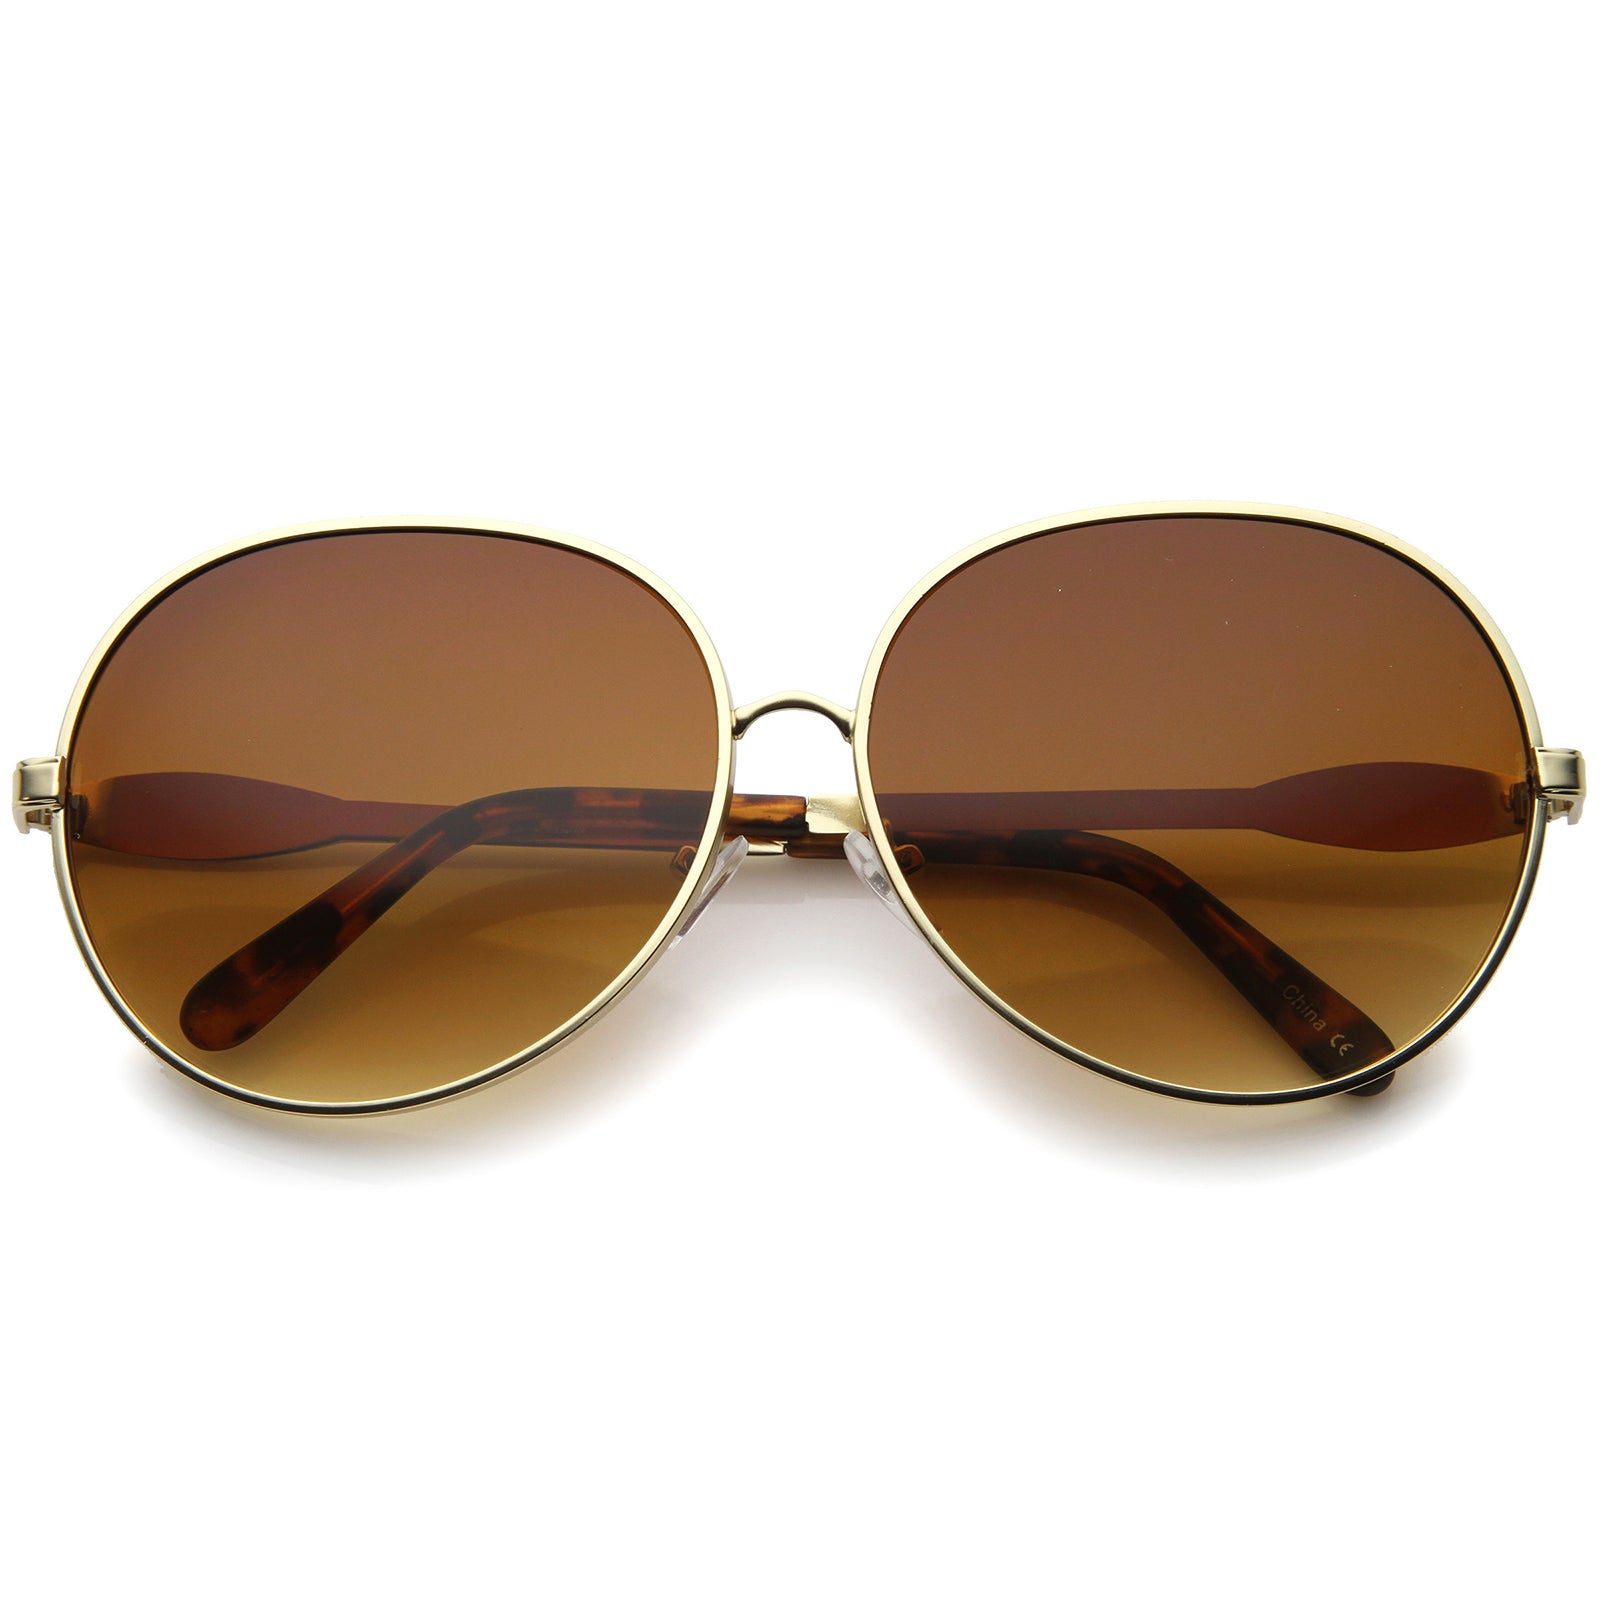 Womens Glam Full Metal Frame Oversized Round Sunglasses 63mm - sunglass.la - 9